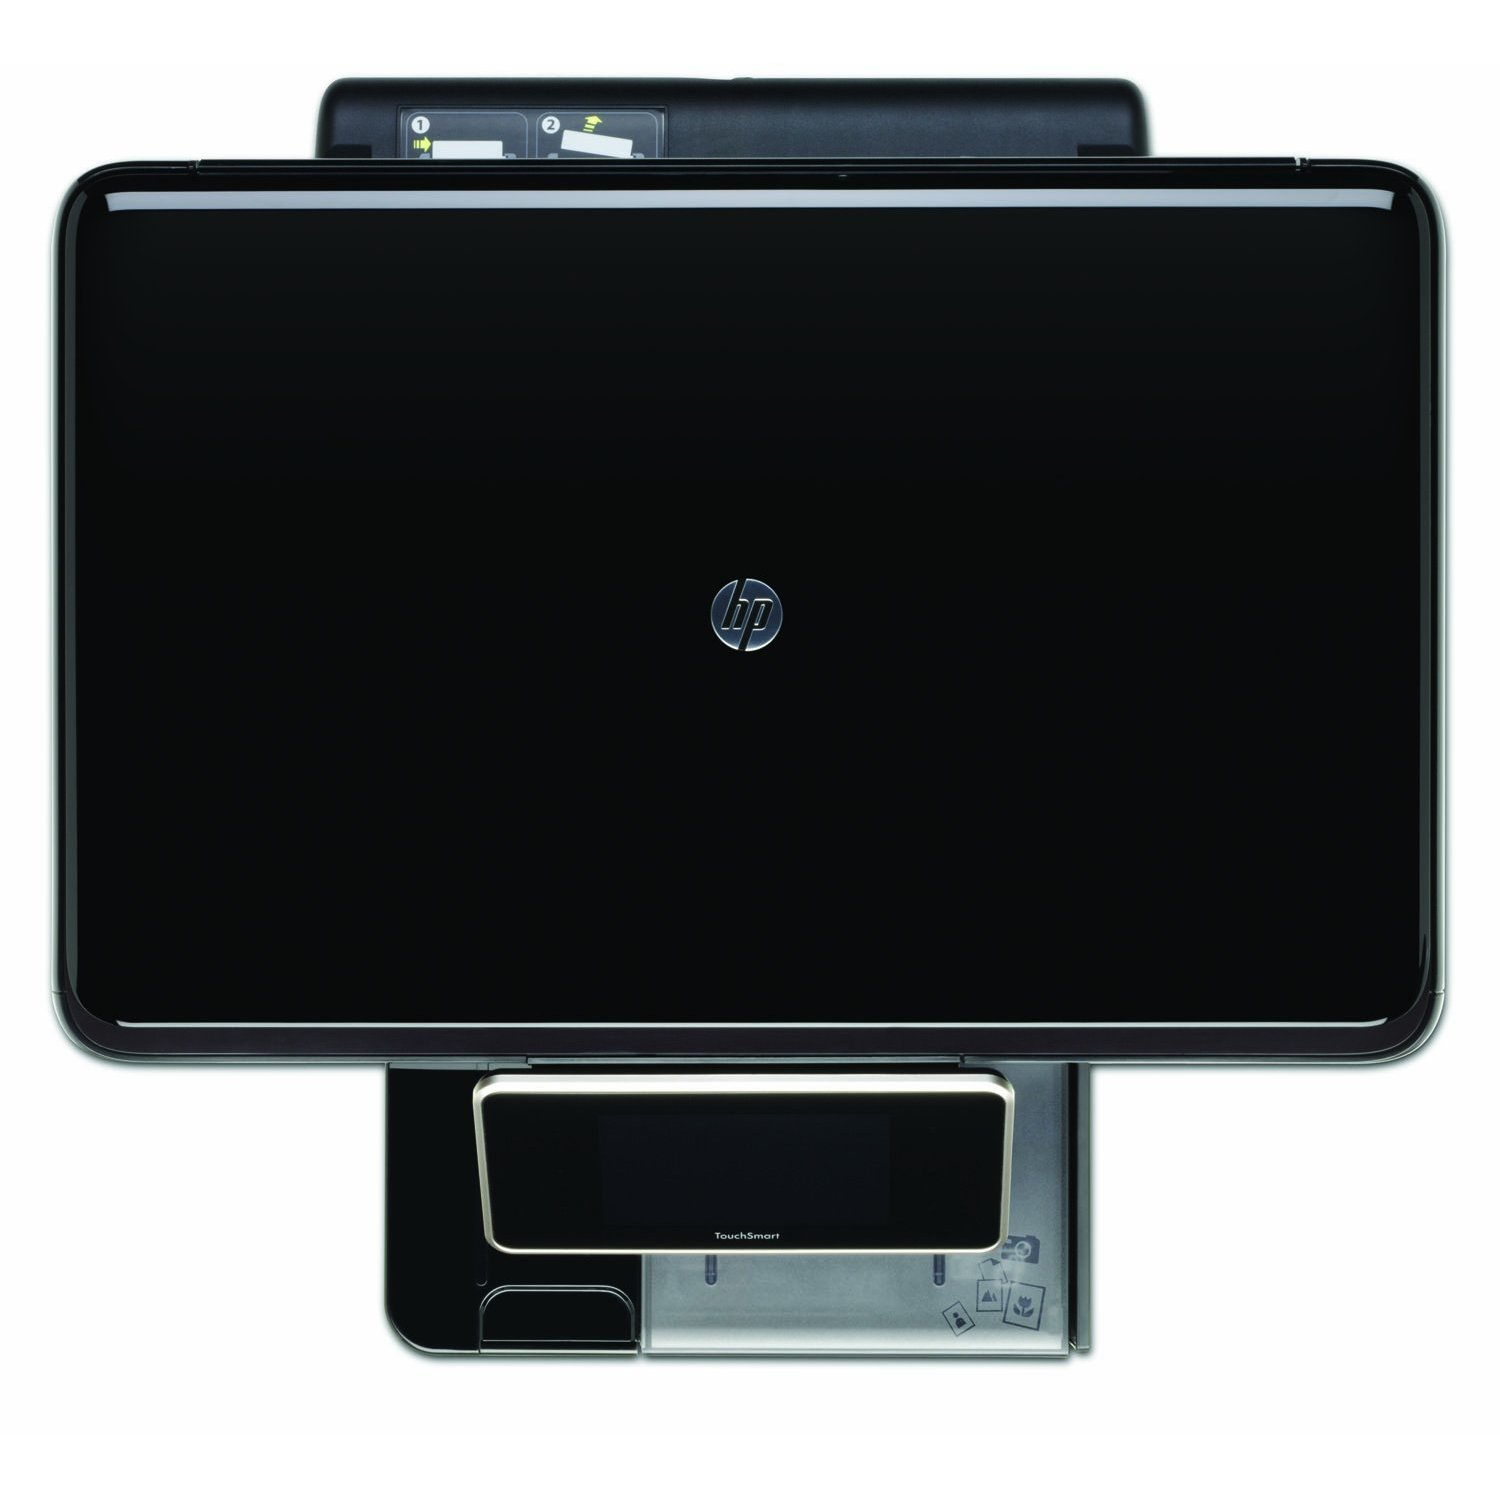 Turn Everyday Ordinary Boxes Into Beautiful Home Hp photosmart c6380 all-in-one wireless setup